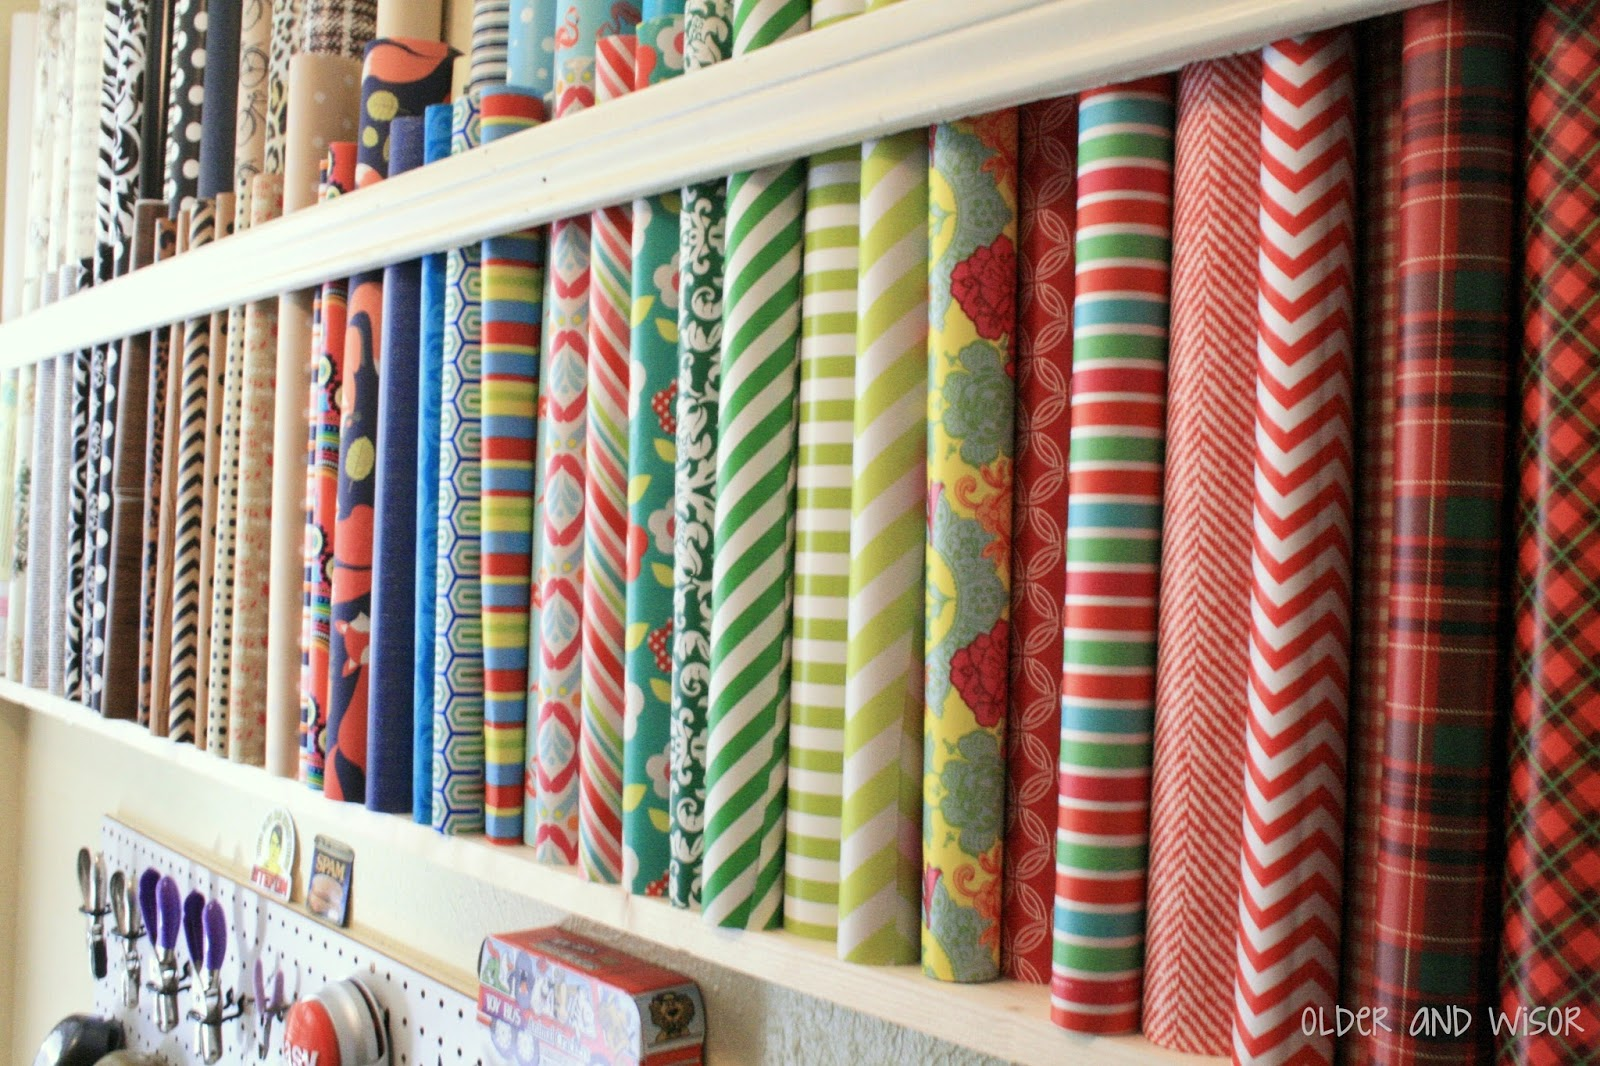 Older And Wisor How To Store Wrapping Paper